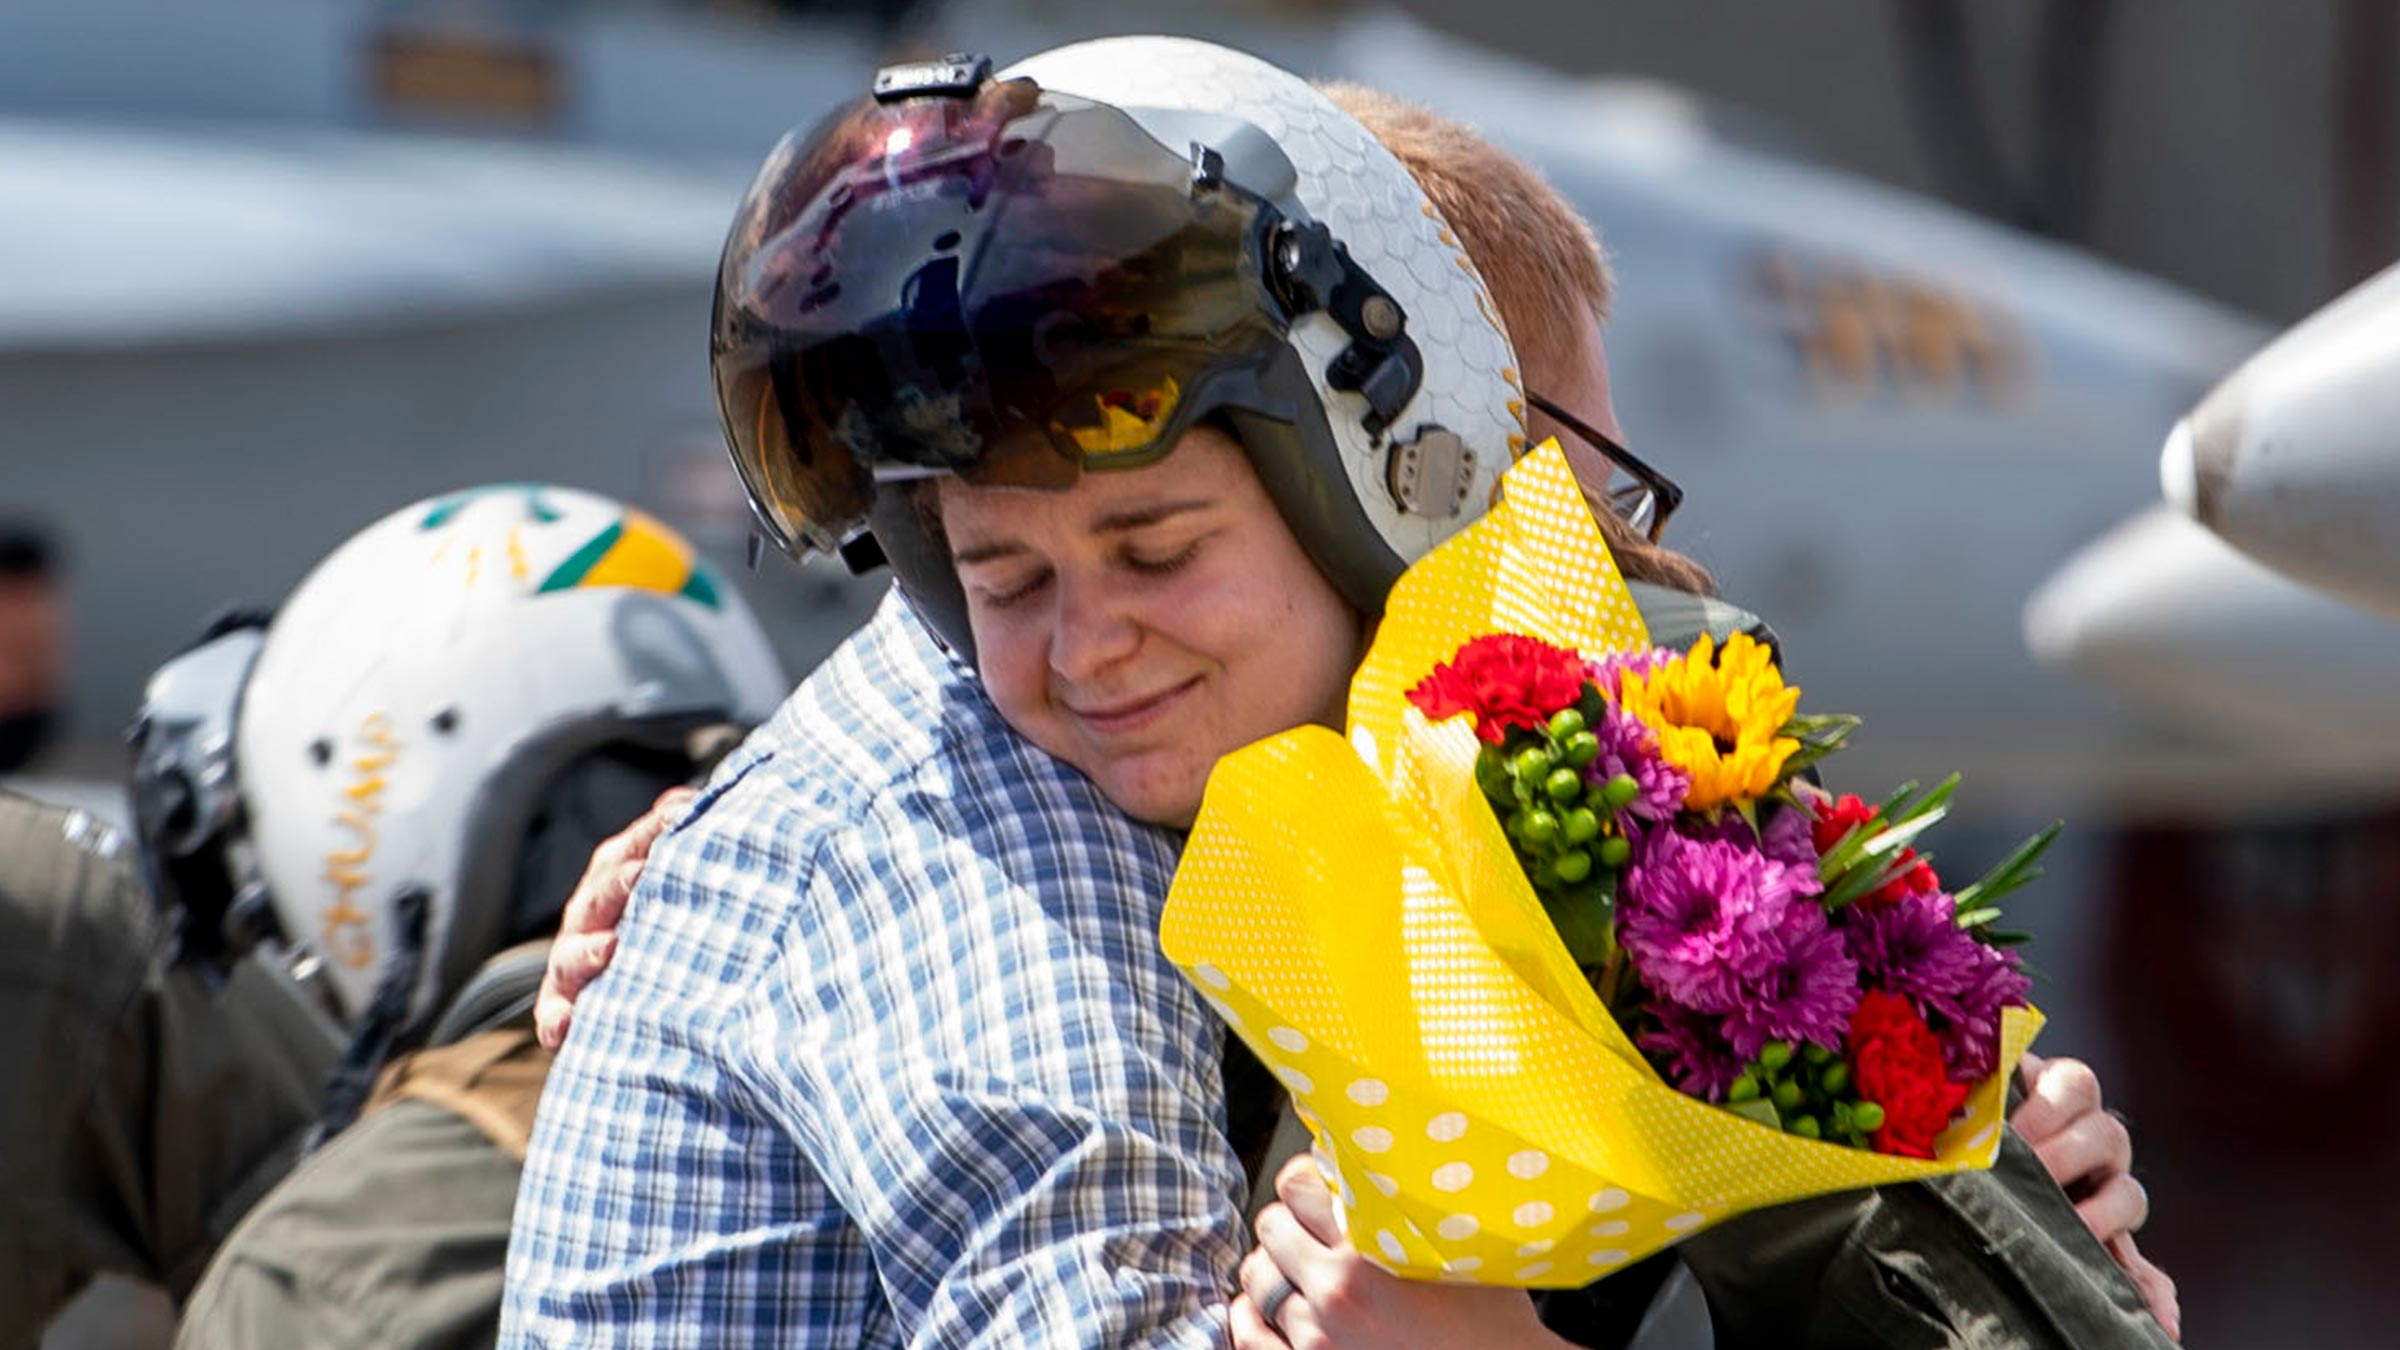 A service member is hugged after returning from deployment